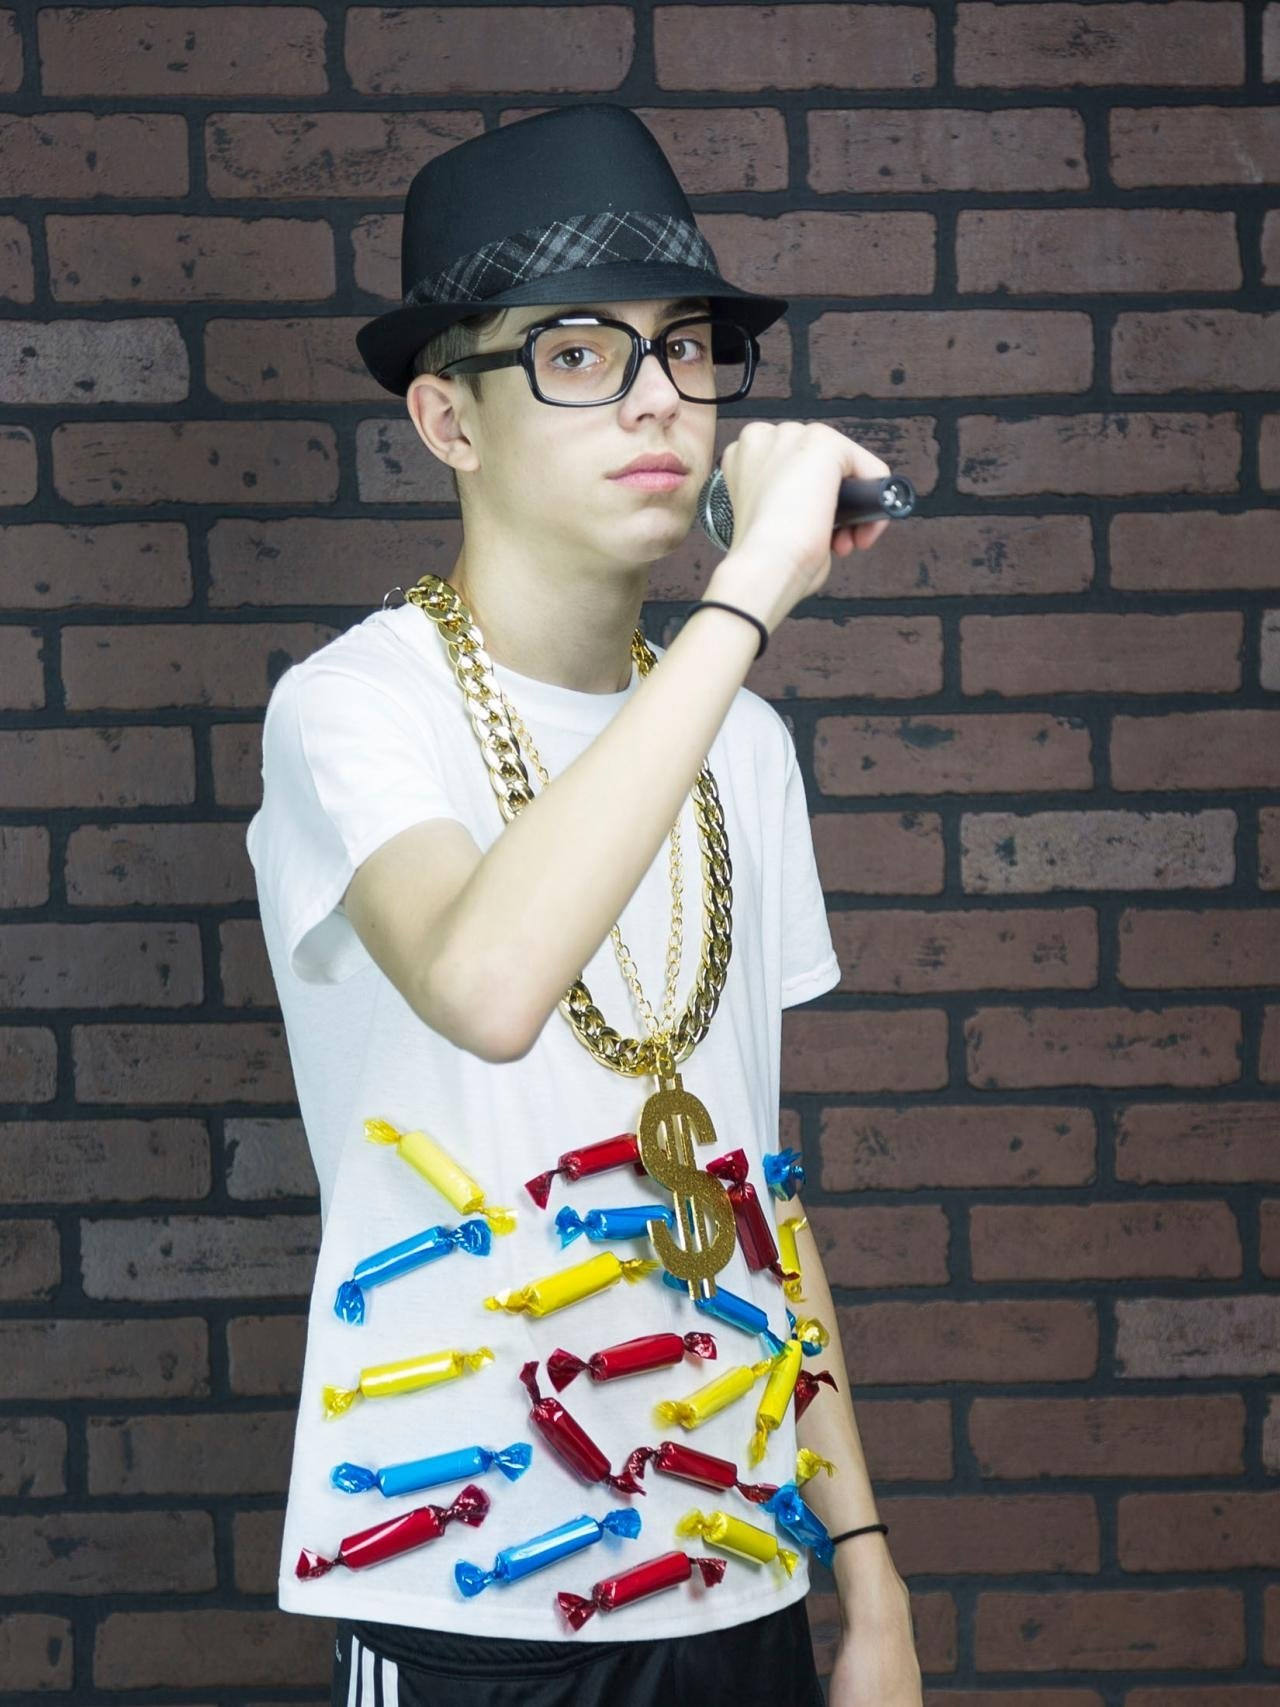 10 Great Adult Homemade Halloween Costume Ideas easy budget halloween costume hip hop candy rapper easy budget 5 2020